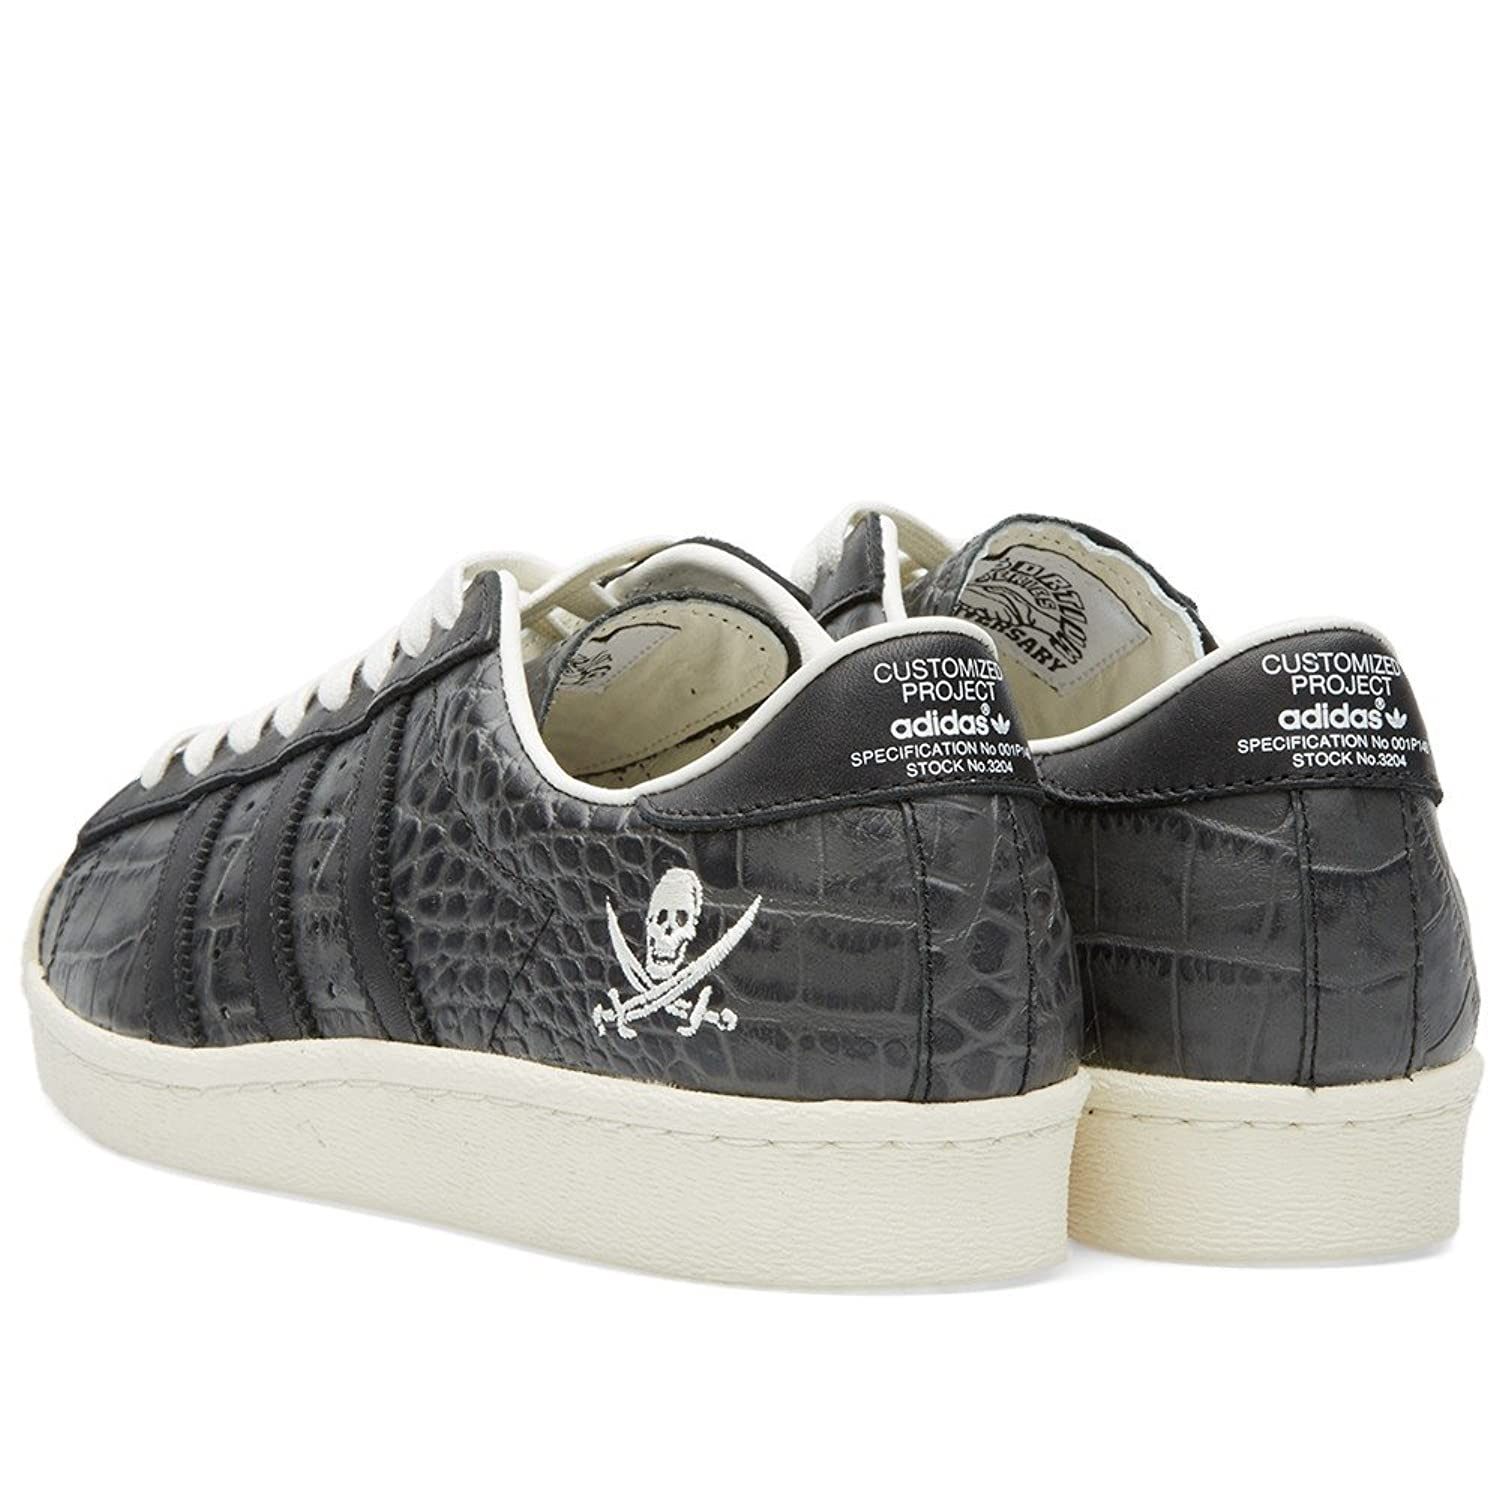 adidas Neighborhood x Consortium 10th Anniversary Superstar - Cblack/Cwhite Trainer Size 5.5 UK vLghB3Wxt